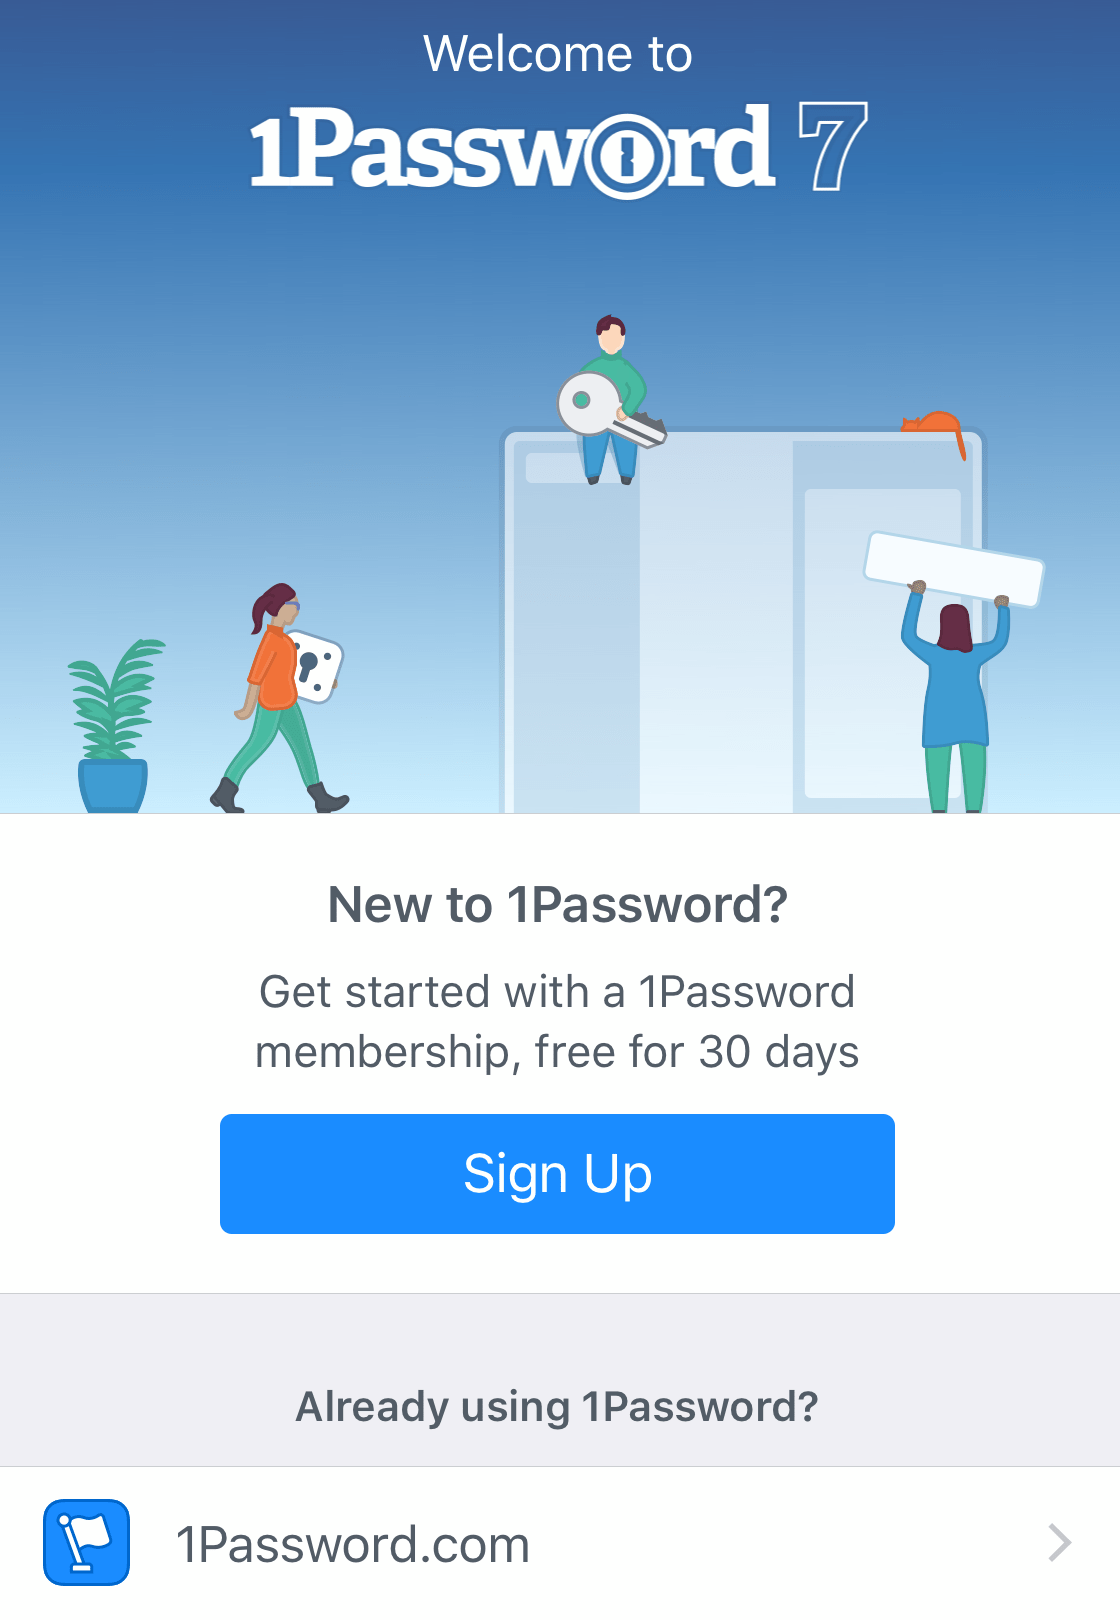 The welcome screen you'll see when you first open 1Password for iOS